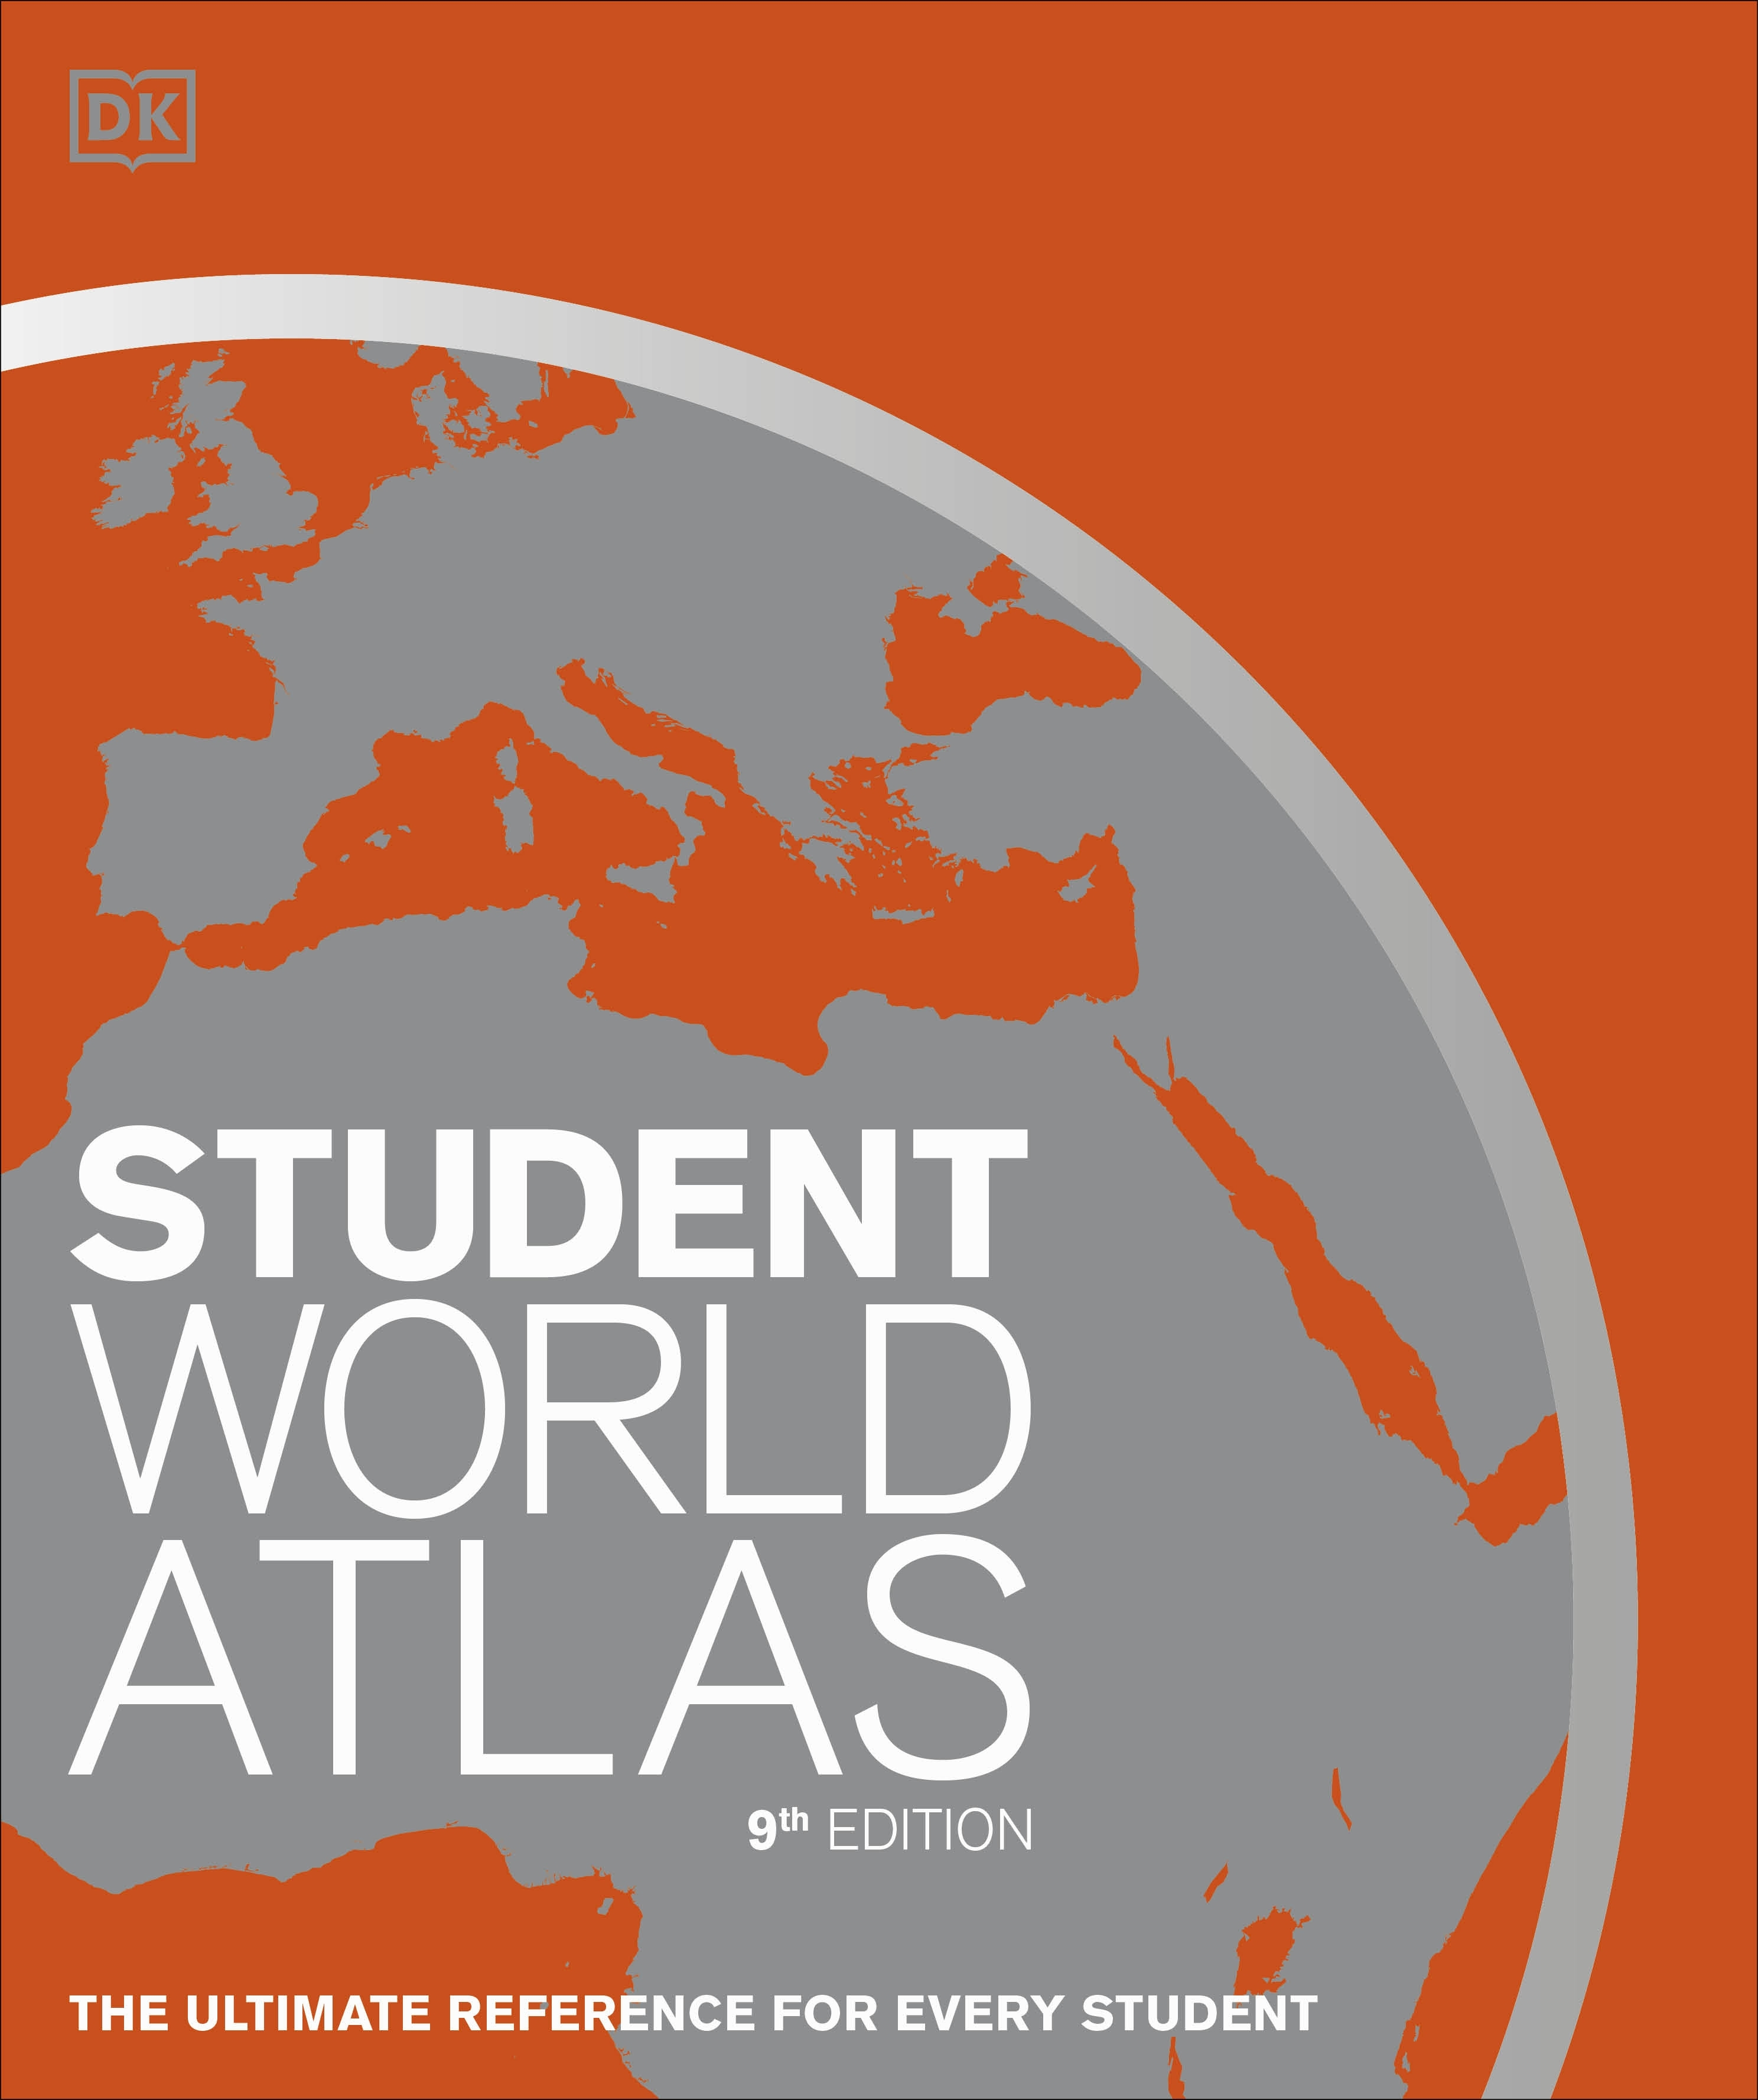 Student Atlas Essential Reference for Students of All Ages